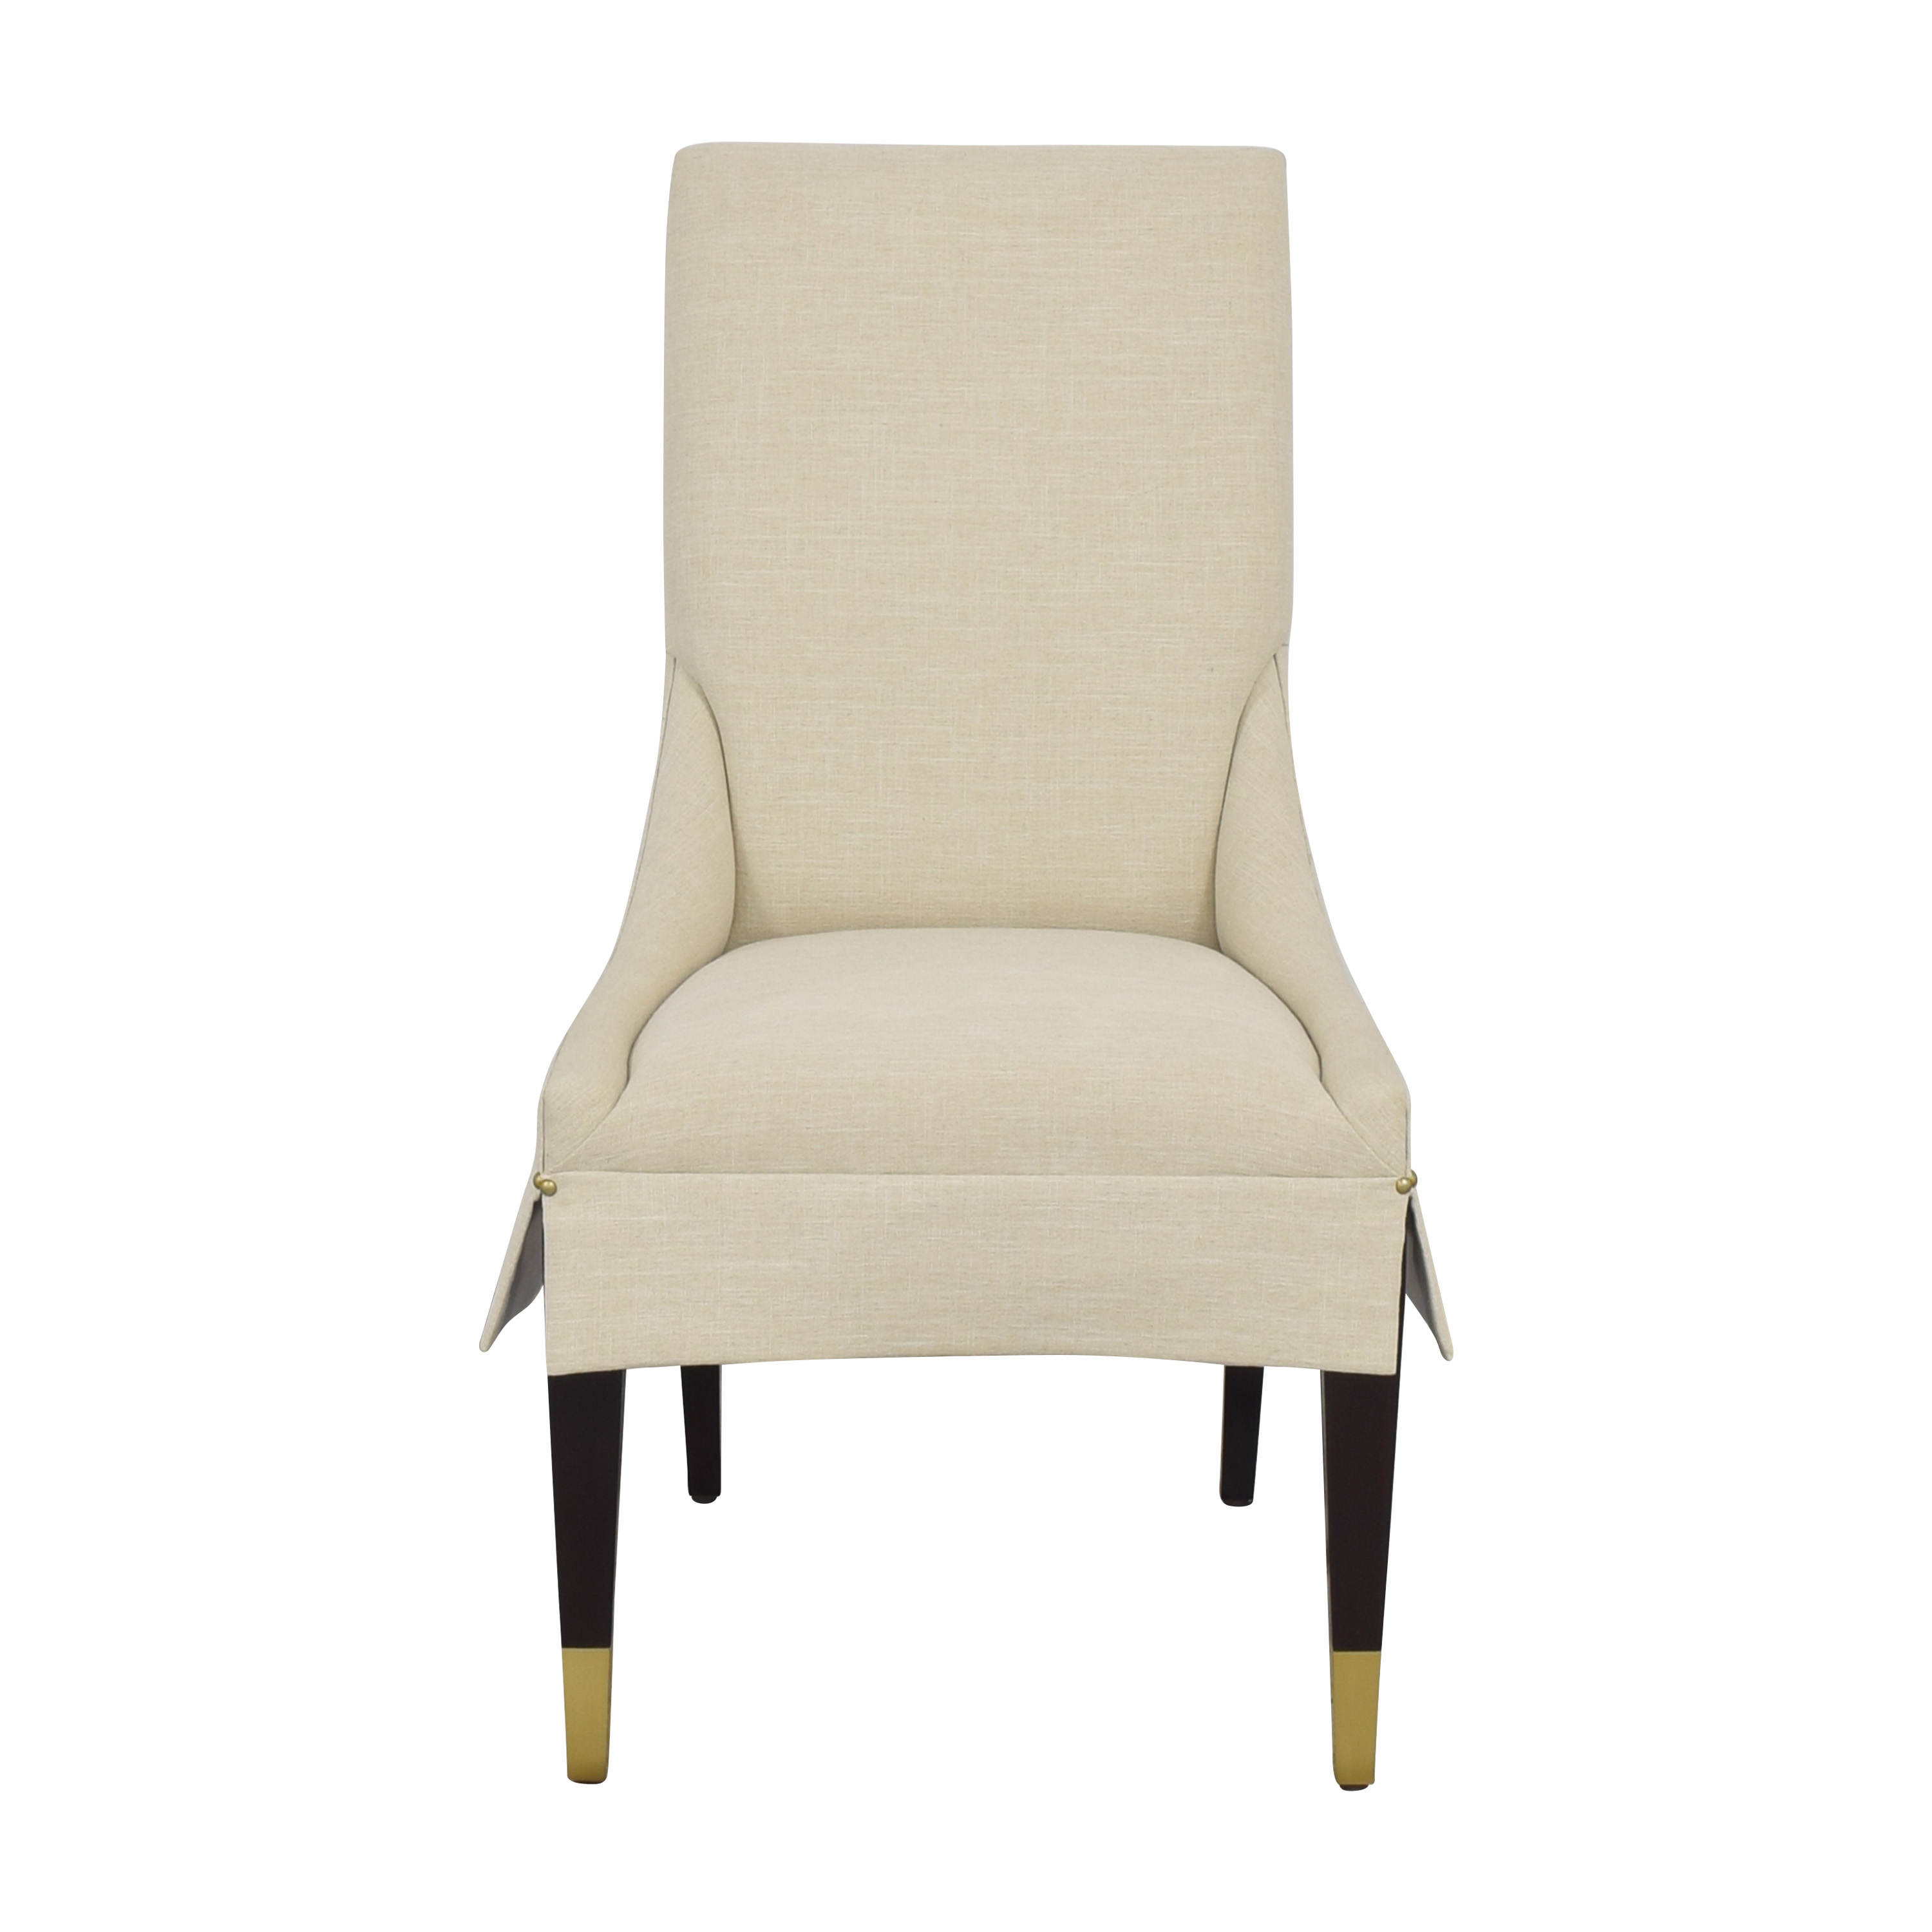 Lexington Furniture Lexington Furniture Carlyle Upholstered Parsons Chair nyc